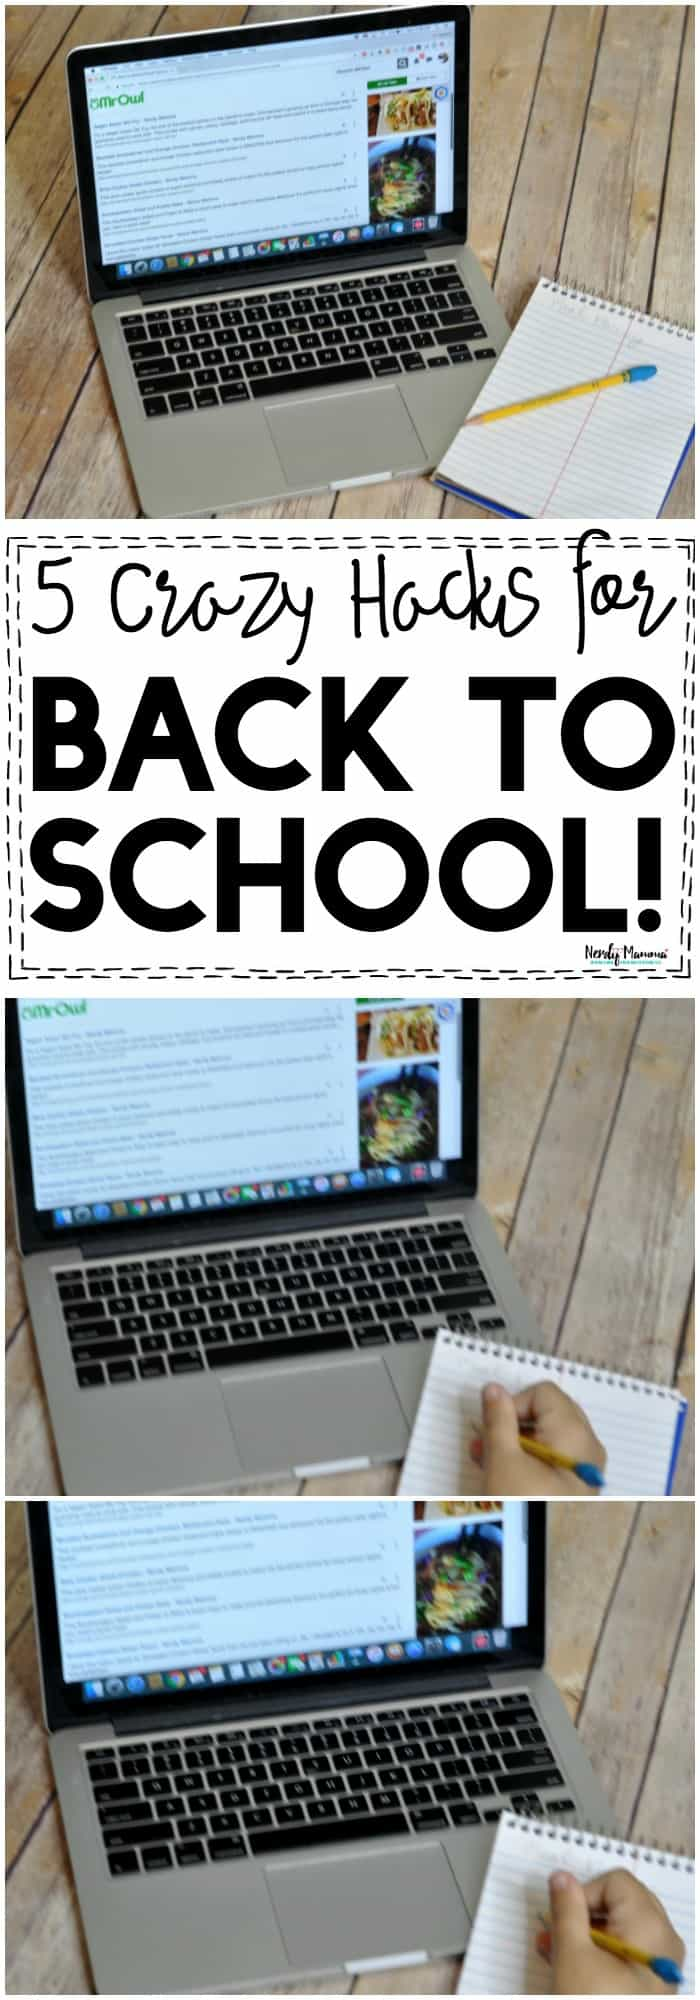 OMG, these 5 crazy back to school hacks are a MUST-READ for busy moms!